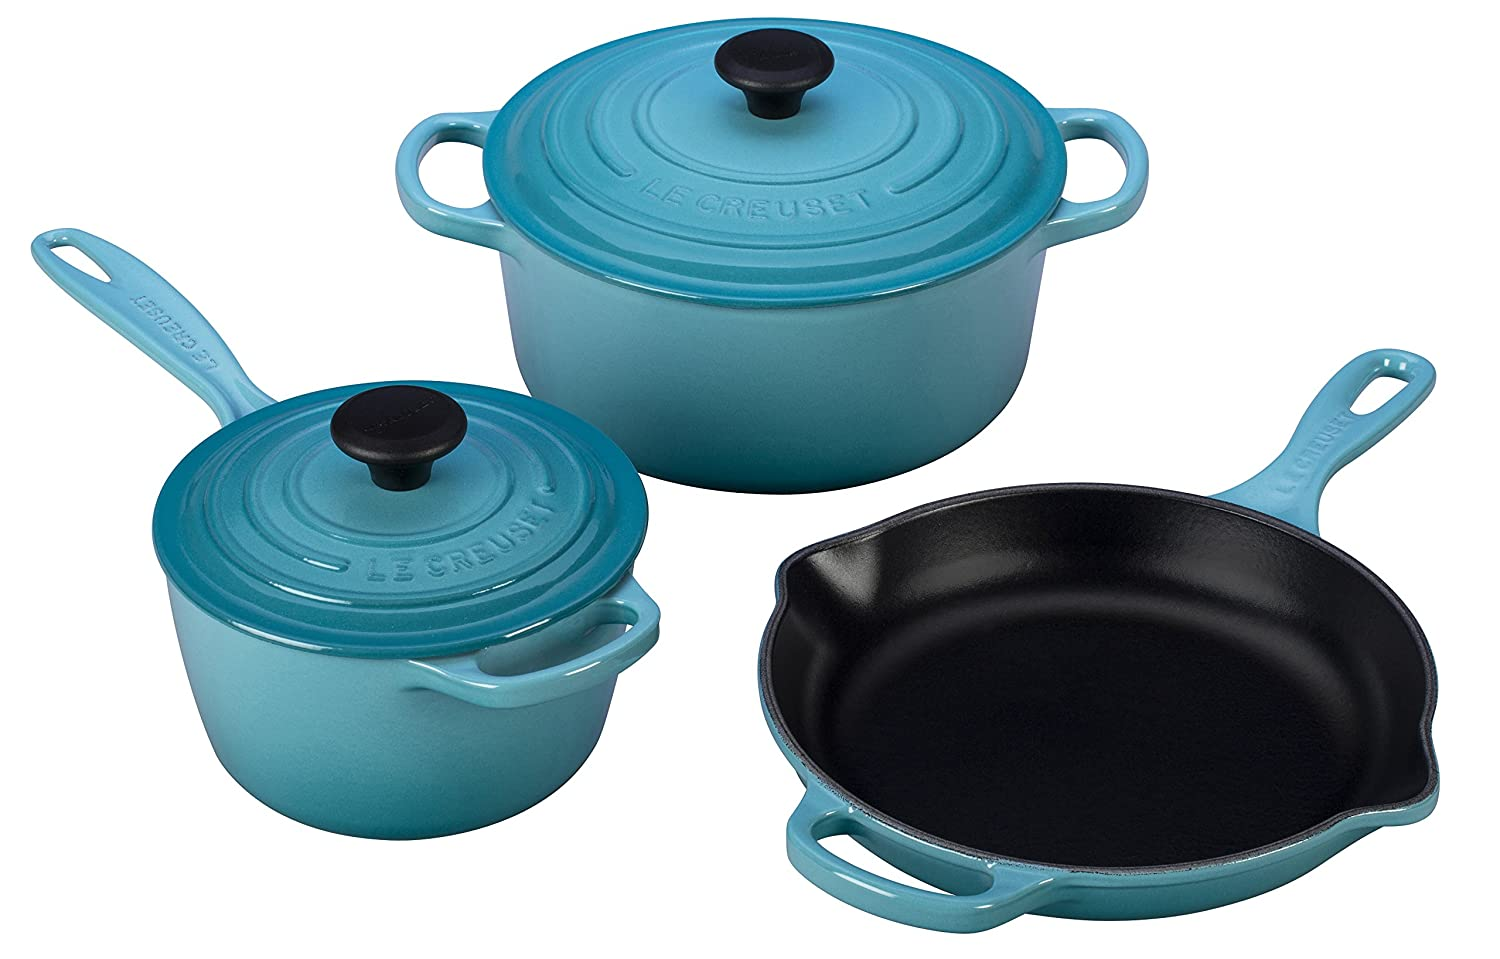 Amazon.com: Le Creuset 5 Piece Signature Enameled Cast Iron ...